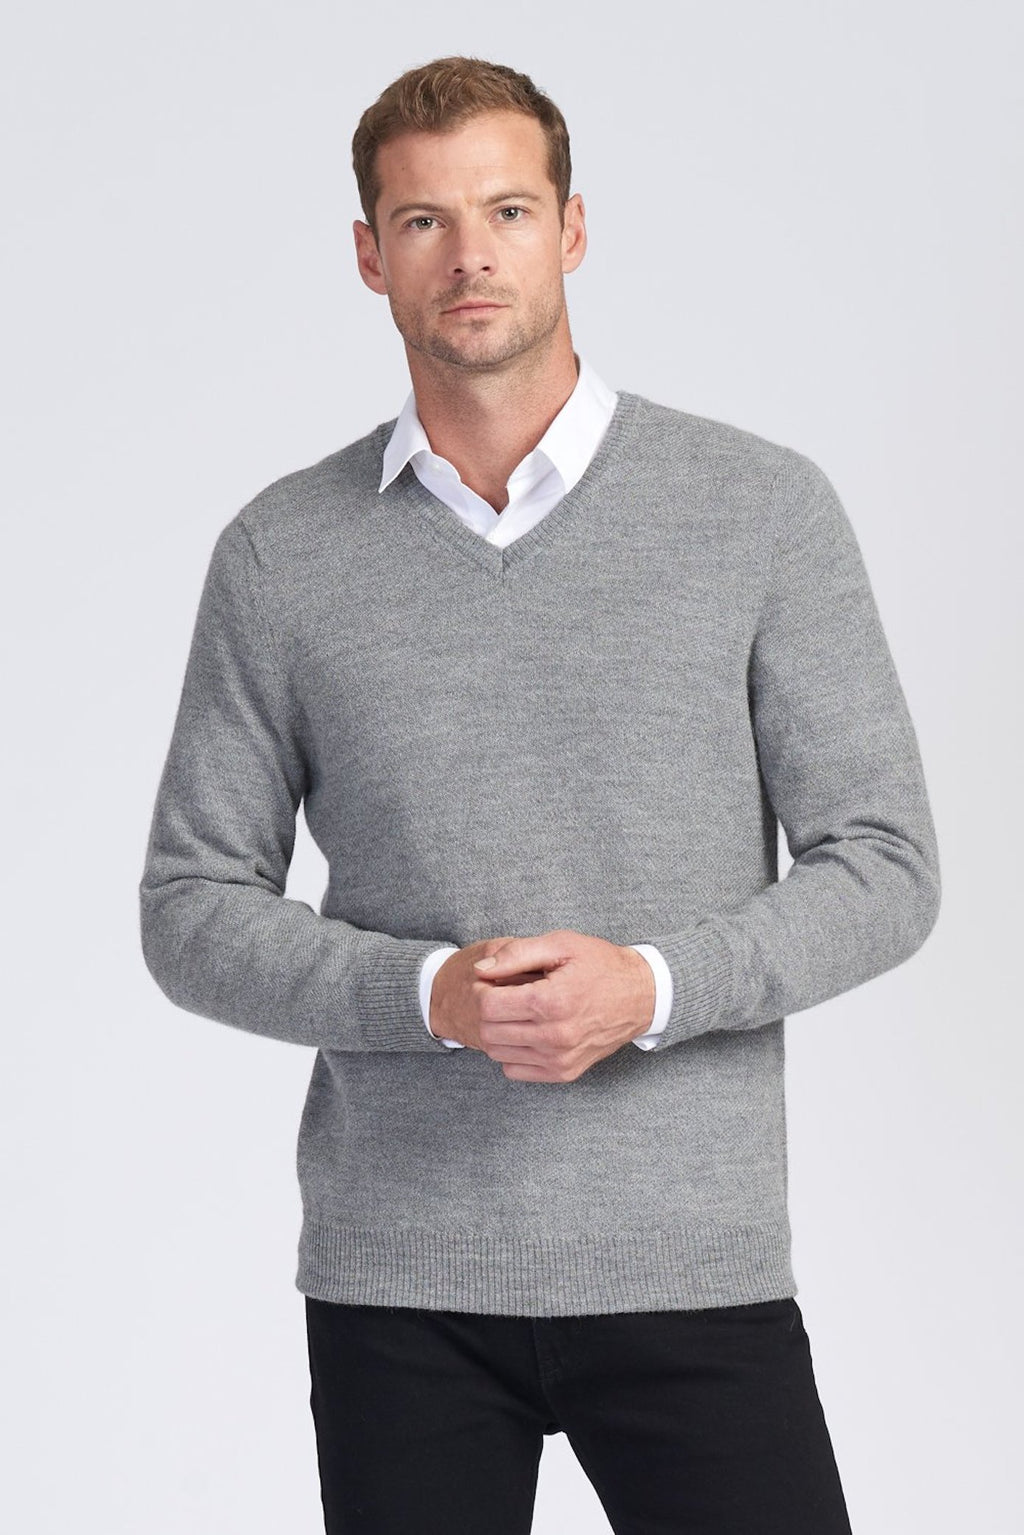 MENS L/S V NECK JUMPER - Woolshed Gallery